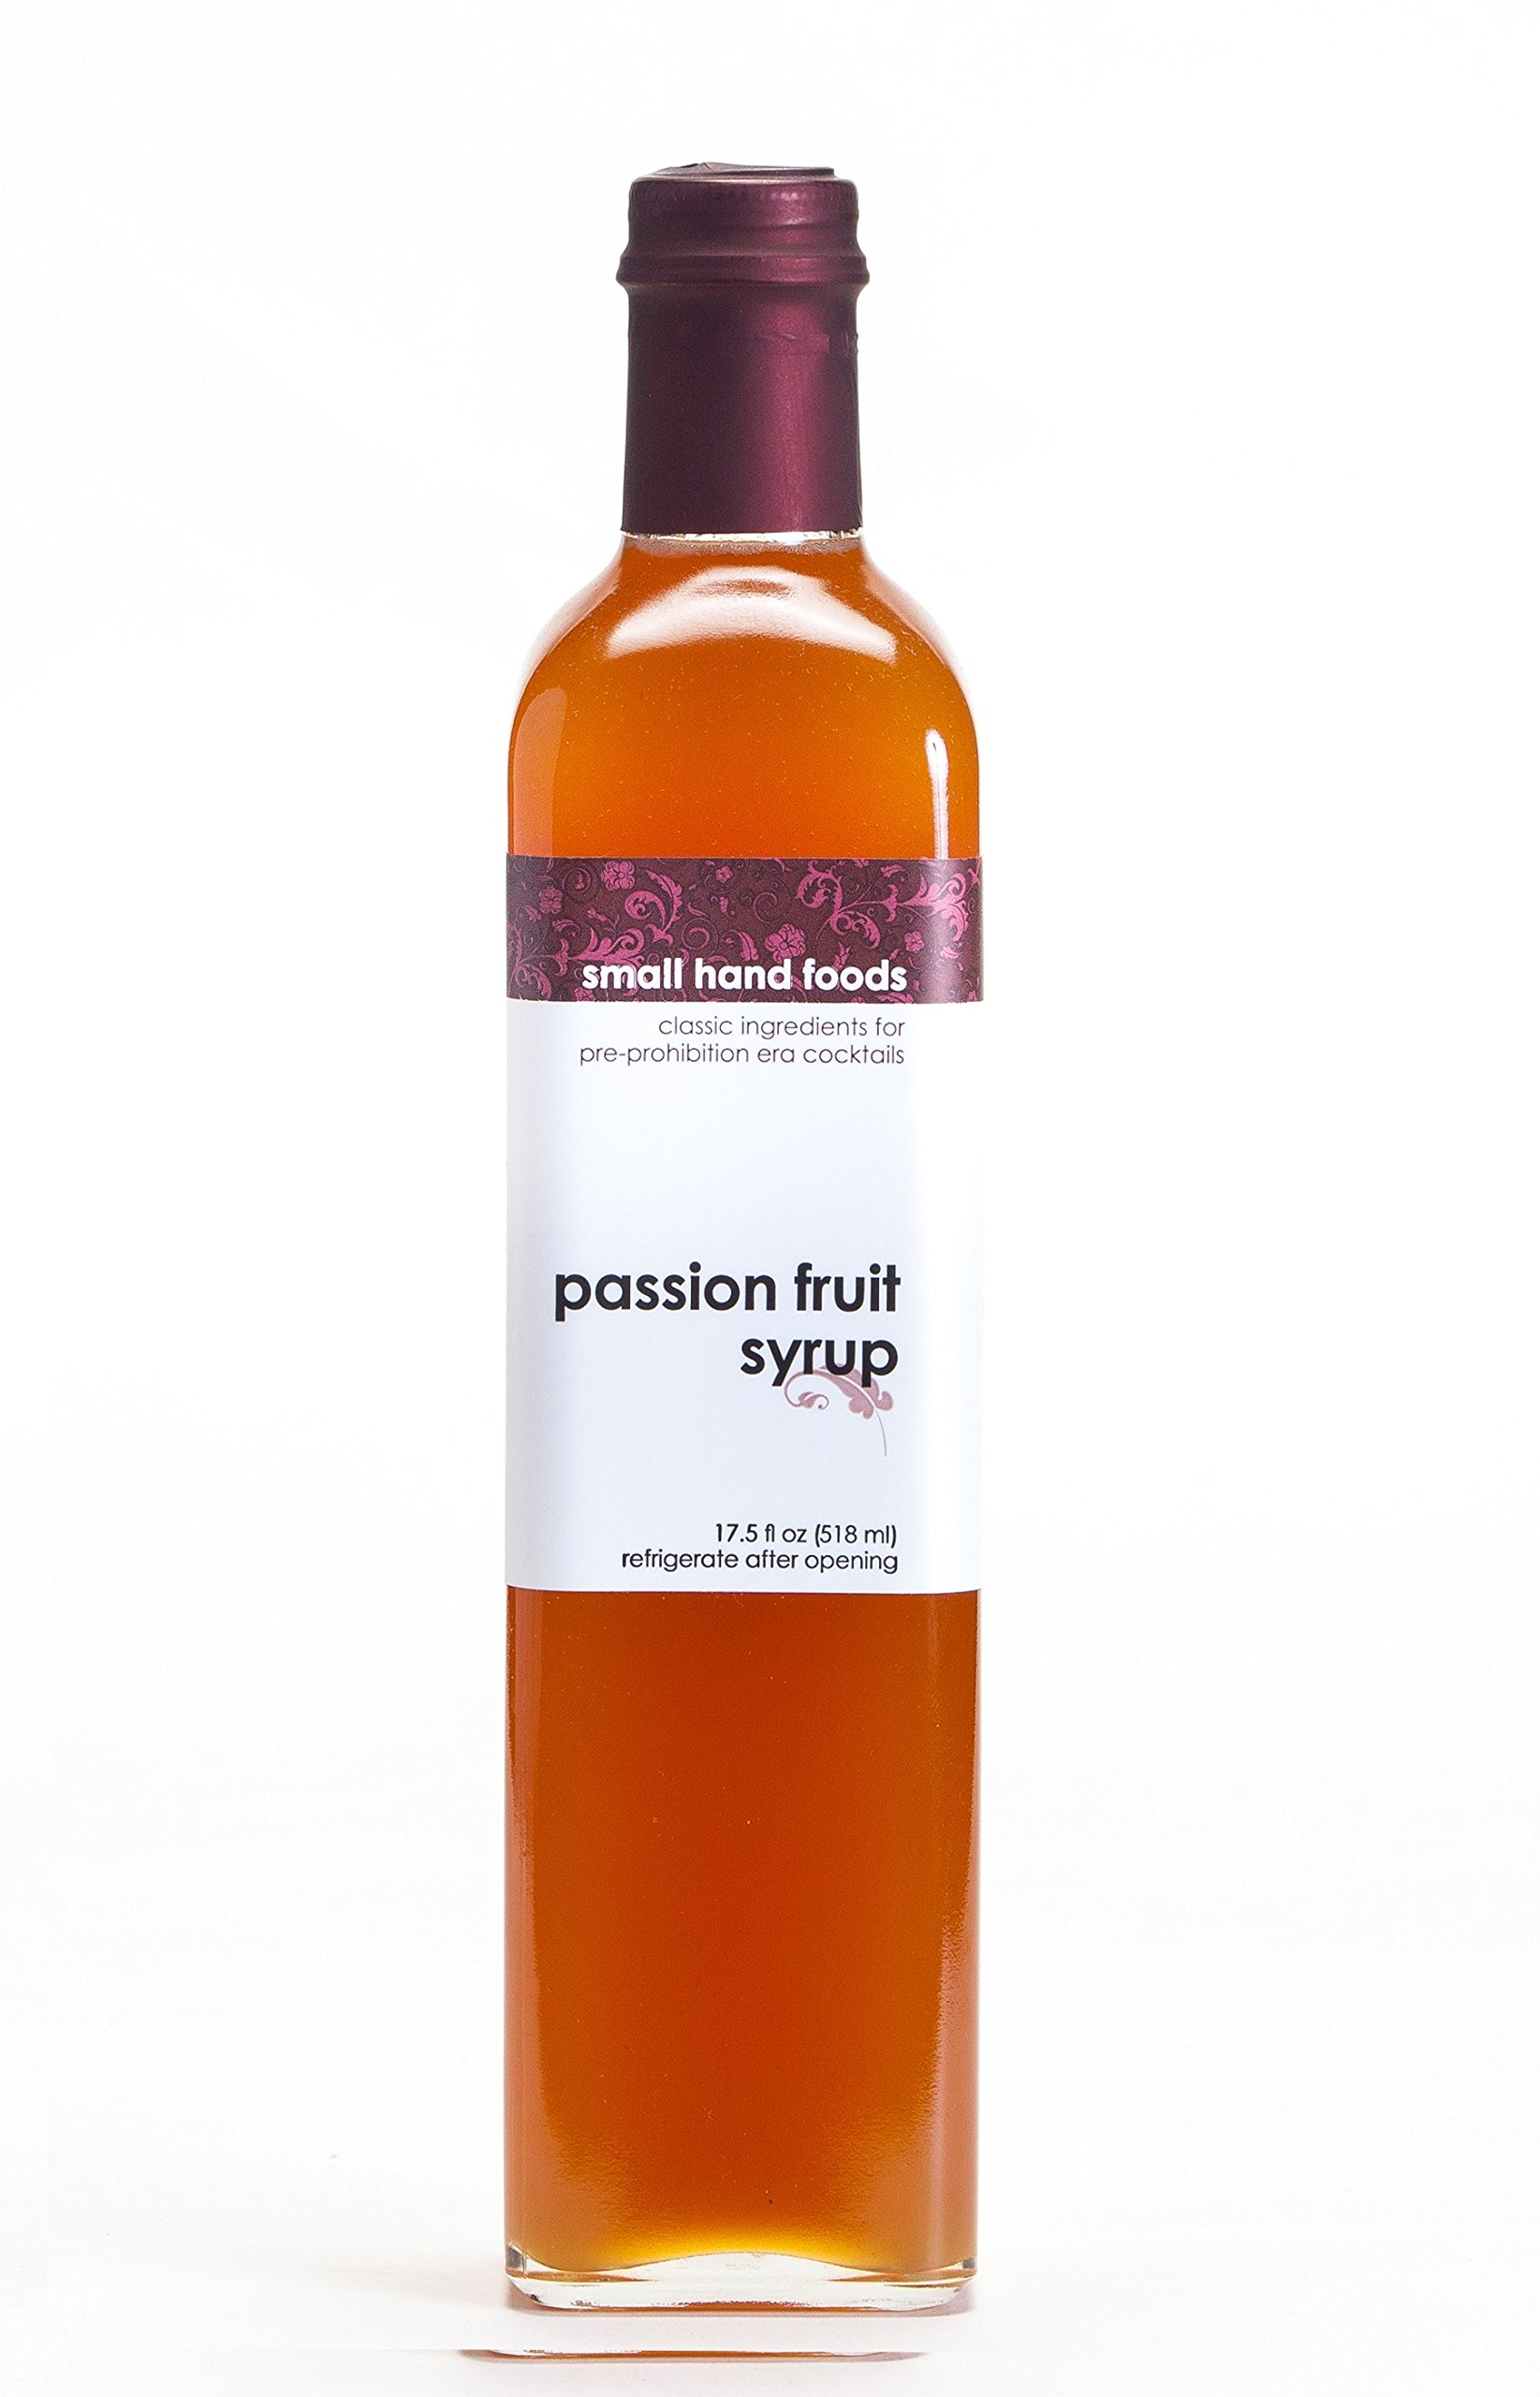 SMALL HAND FOODS Passion Fruit Syrup, 500 ml by Small Hand Foods (Image #1)